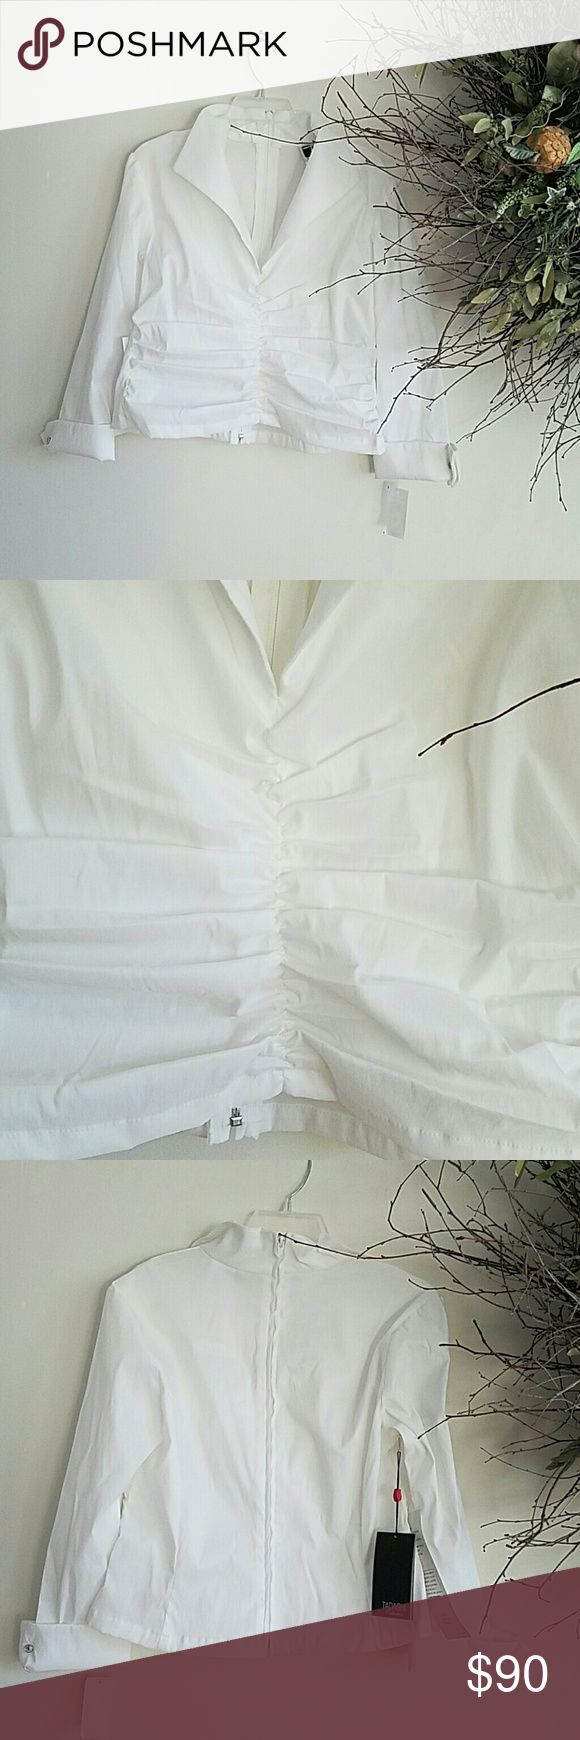 Tadashi white evening blouse Gorgeous Tadashi evening blouse with back white zipper. Cuffs have a crystal style button Tadashi Collection Tops